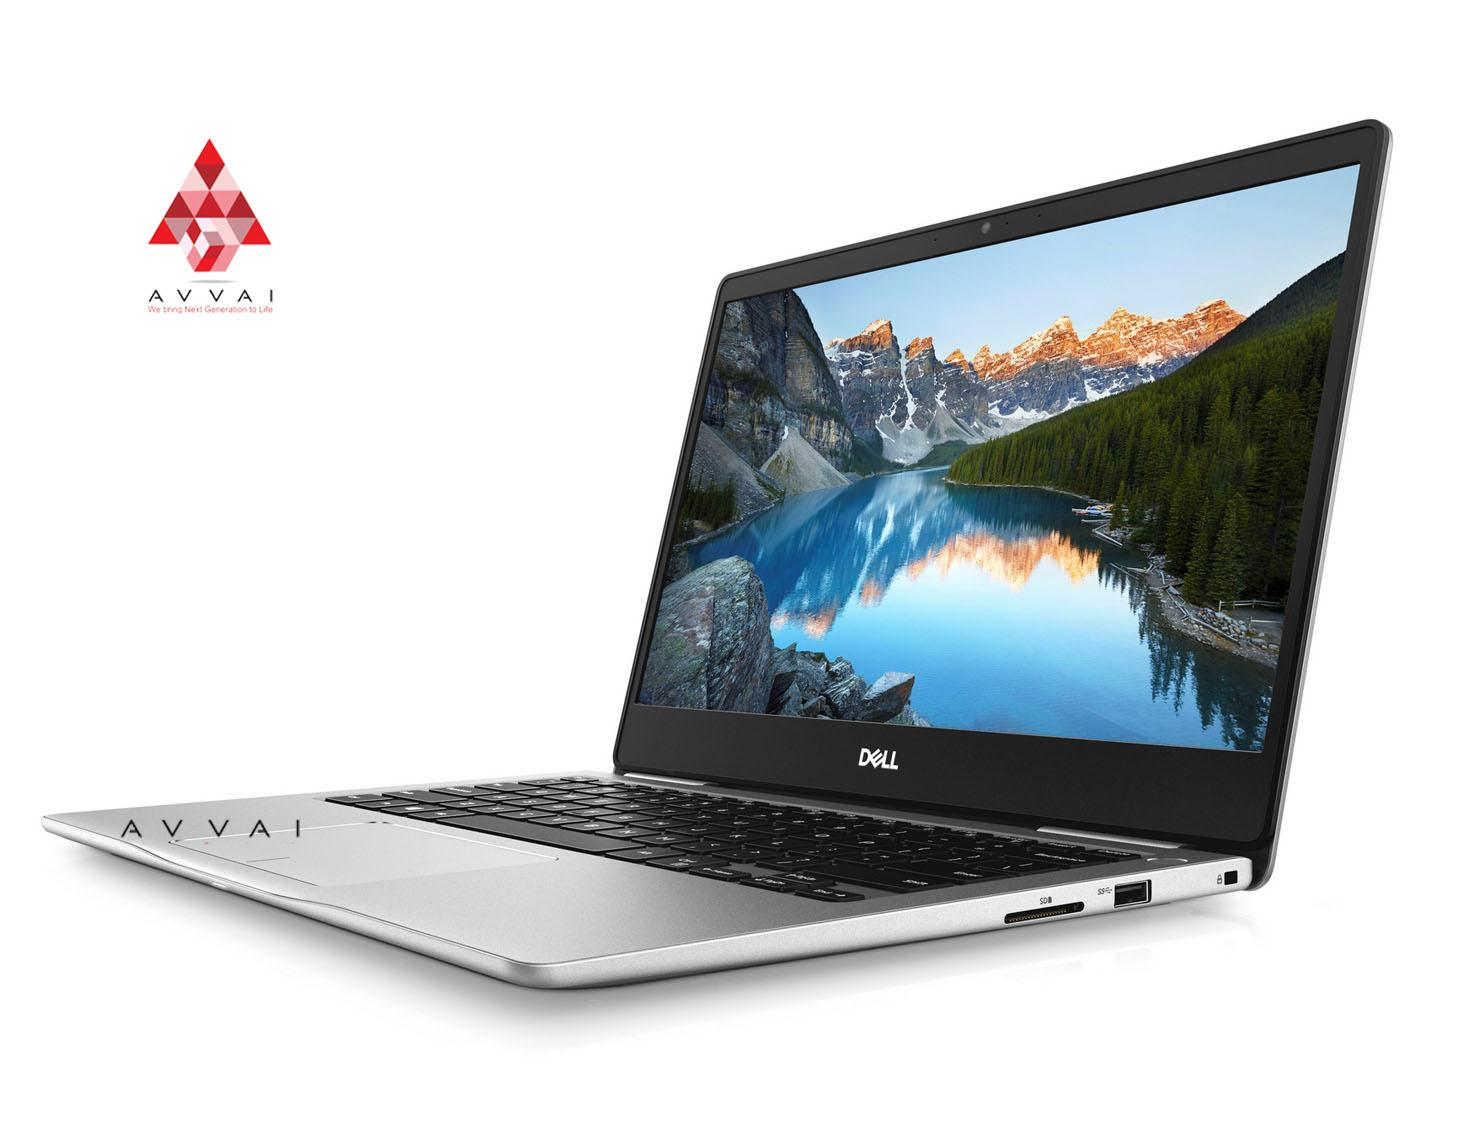 [LATEST ARRIVAL- 2018] DELL 8th Gen Inspiron 13 7000 Series 2 in 1- 7373- i7-8550U (6MB Cache, up to 3.4...